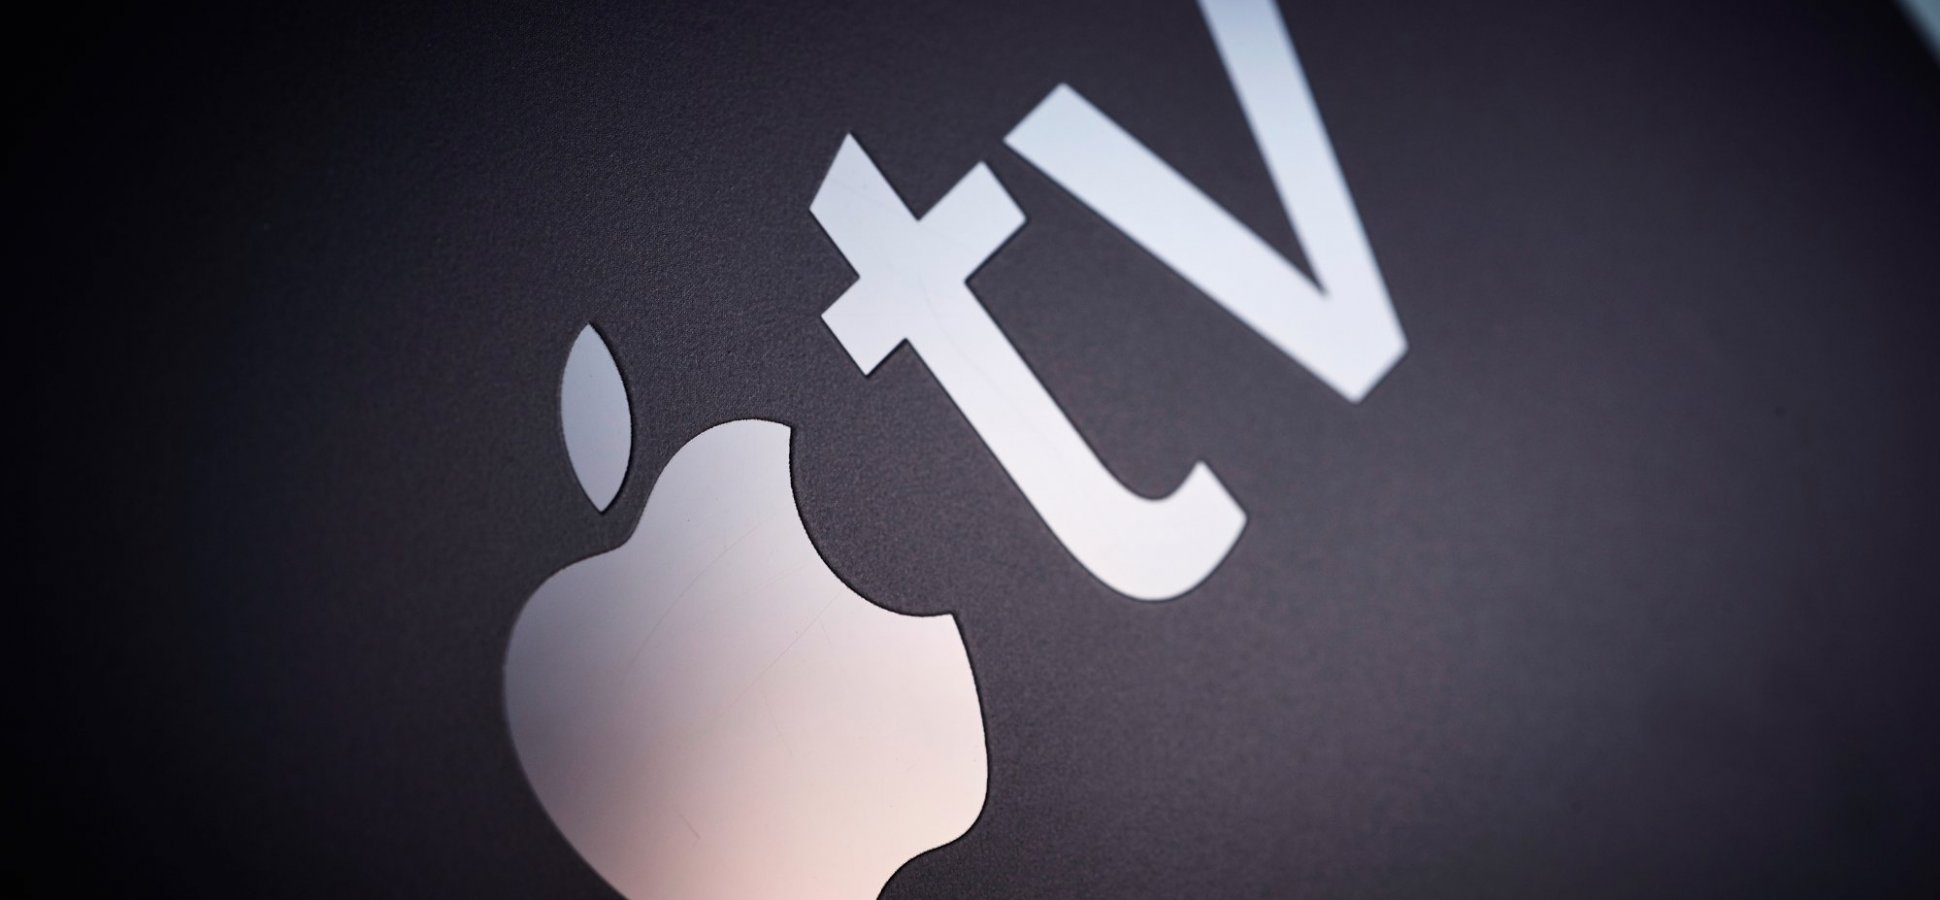 Apple Just Offered a 1-Year Free Trial of Apple TV Plus. But Make Sure You Add This Additional Step to the Process